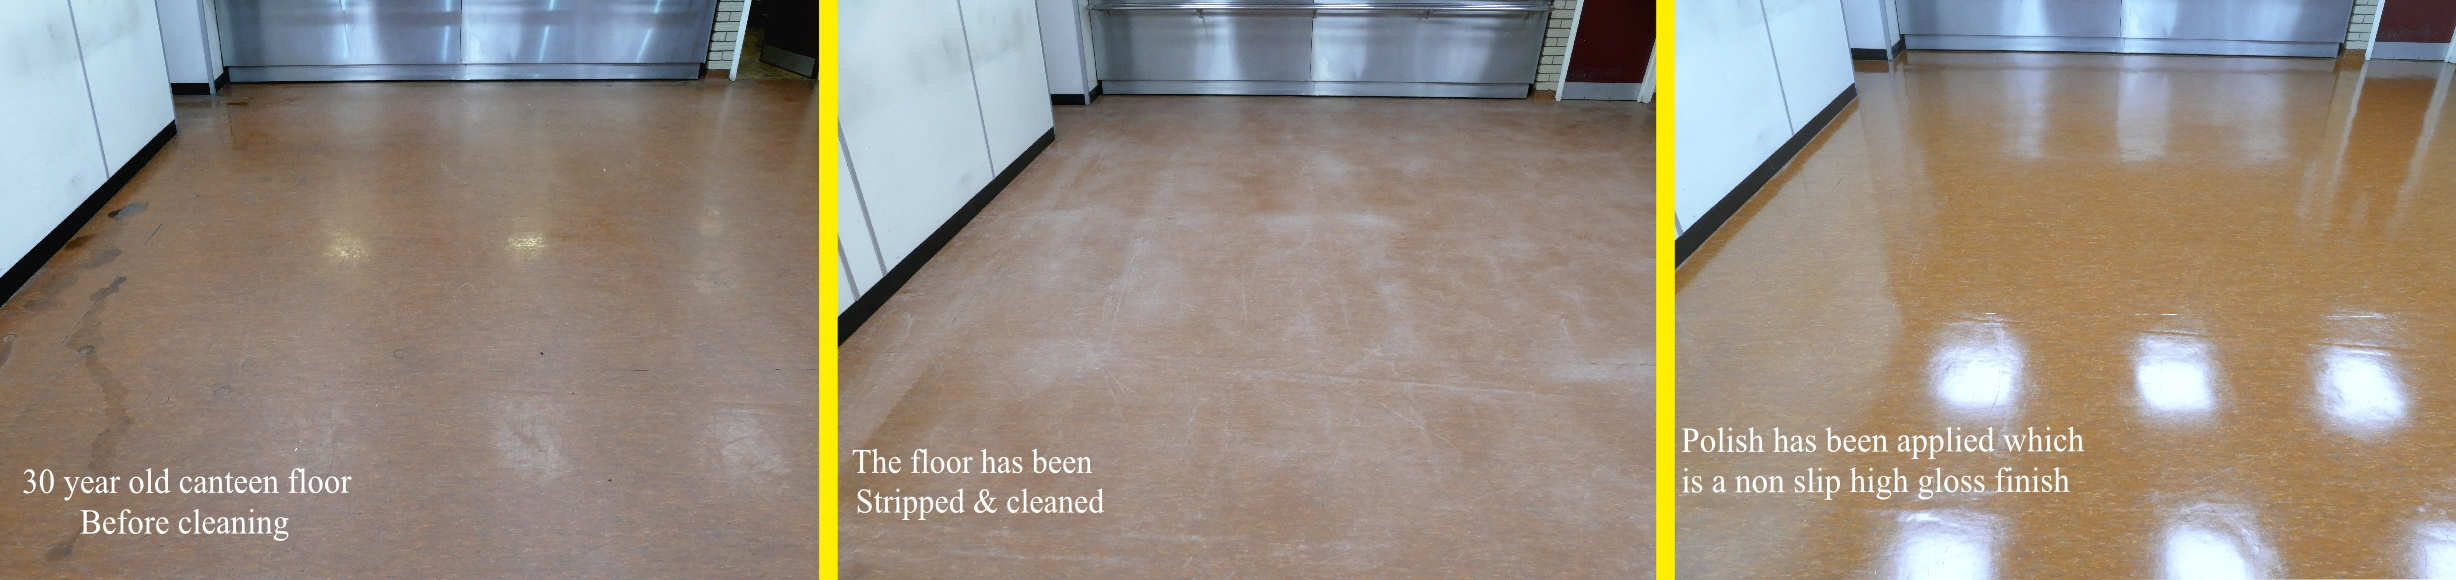 Commercial and industrial floor cleaning service in cheshire commercial floor restoration in cheshire dailygadgetfo Images